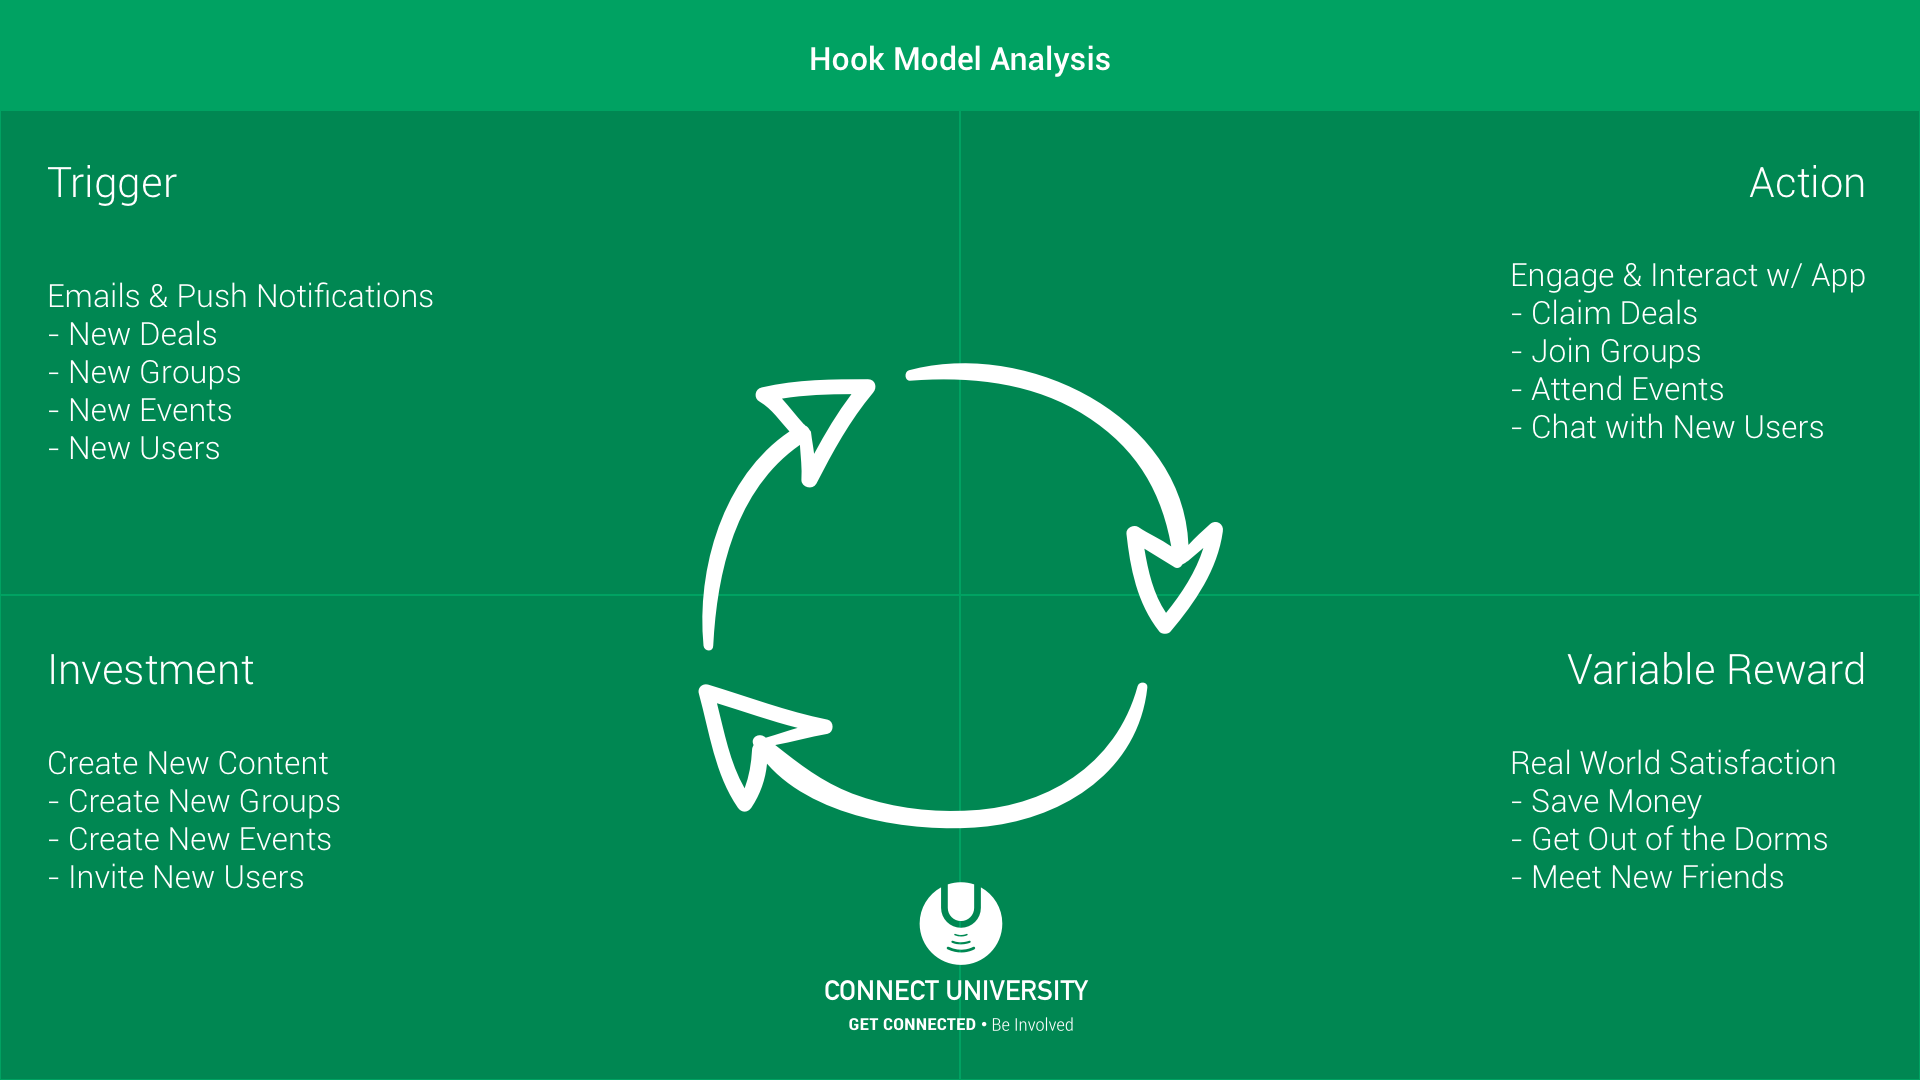 Connect University Hook Model Analysis